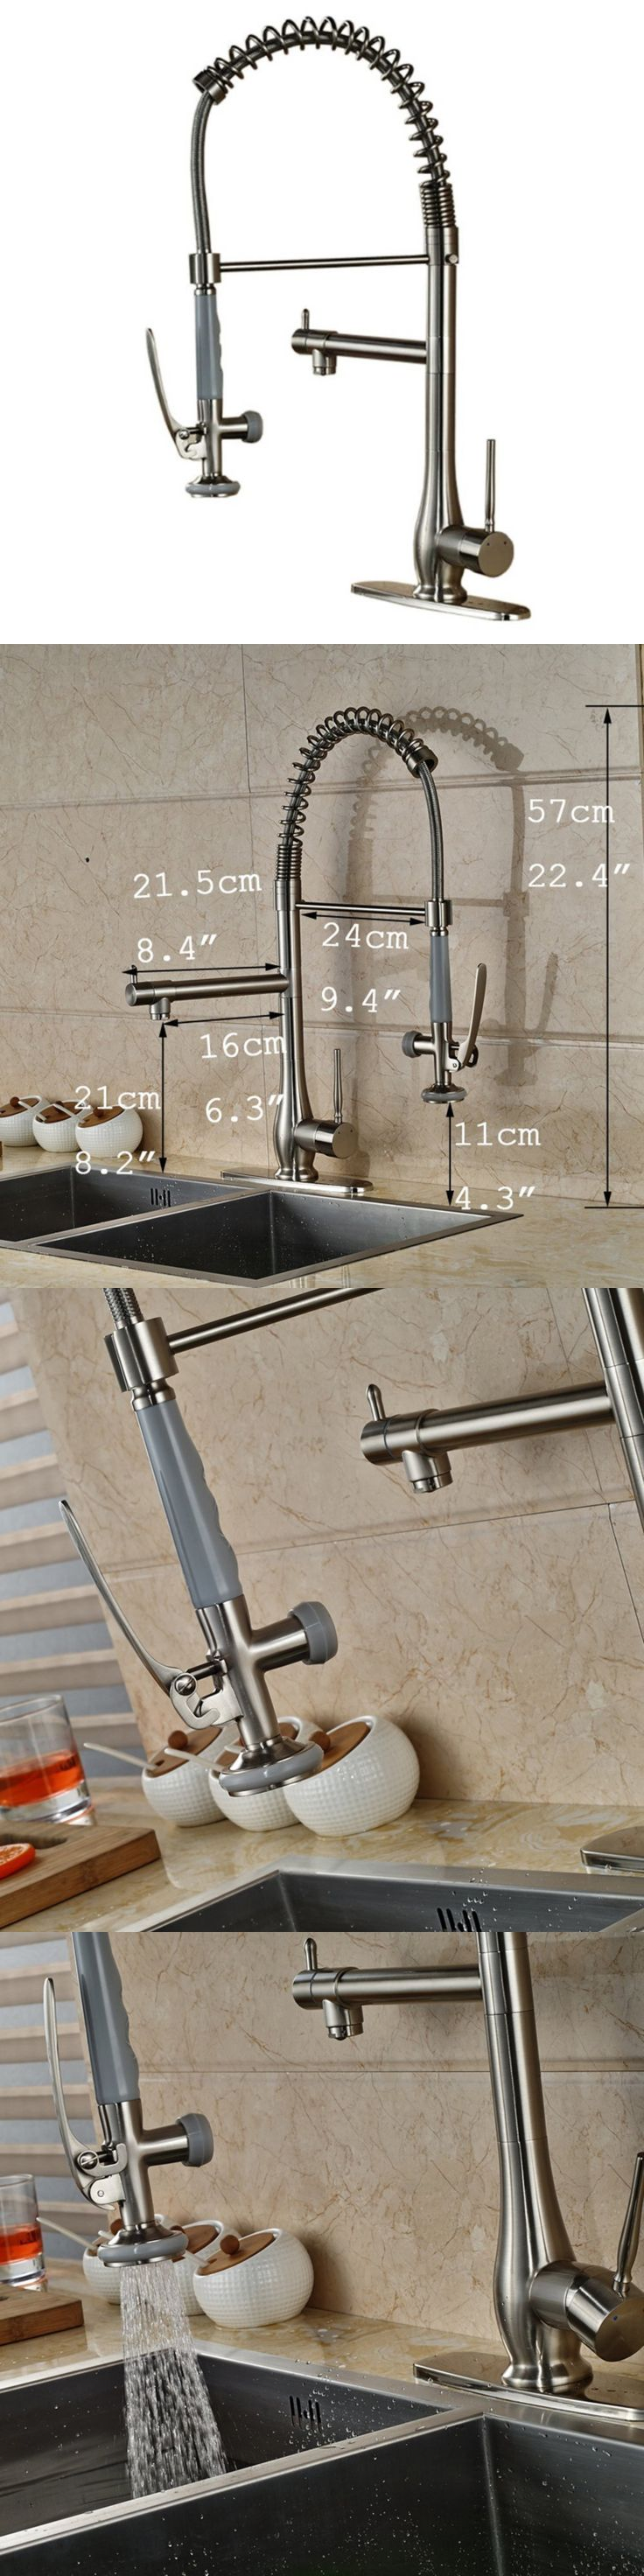 Laundry sink ebay - Faucets 42024 Votamuta Commercial Style Single Handle Pull Down Kitchen Sink Faucet With Spray